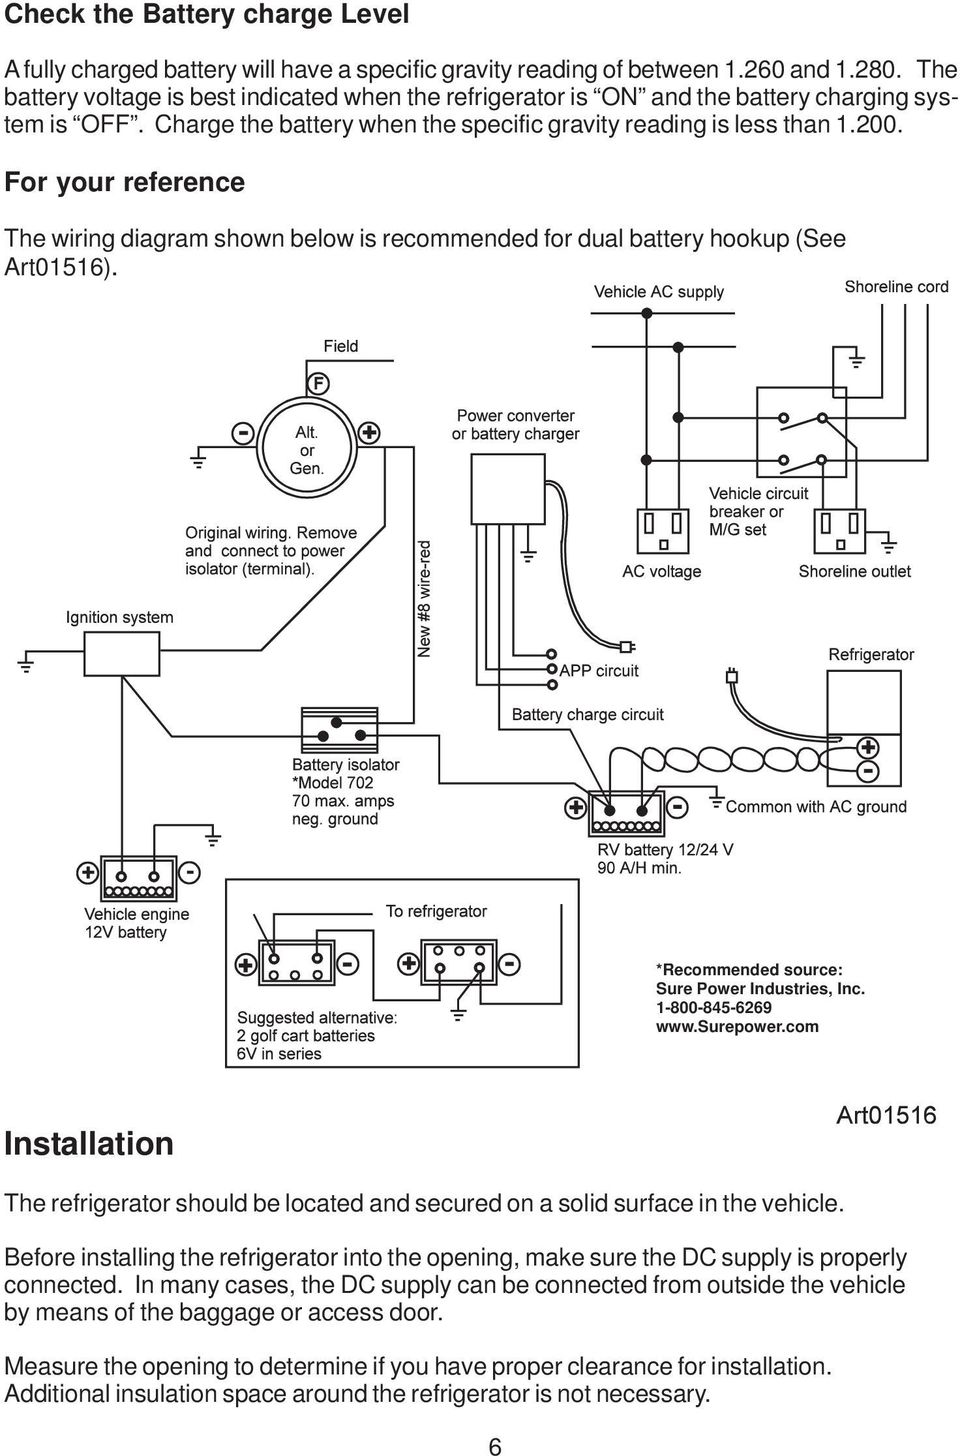 Dc Refrigerators 12 24 Volts Installation And Owner S Manual Pdf Wiring Diagram For Dual Rv Batteries Your Reference The Shown Below Is Recommended Battery Hookup See